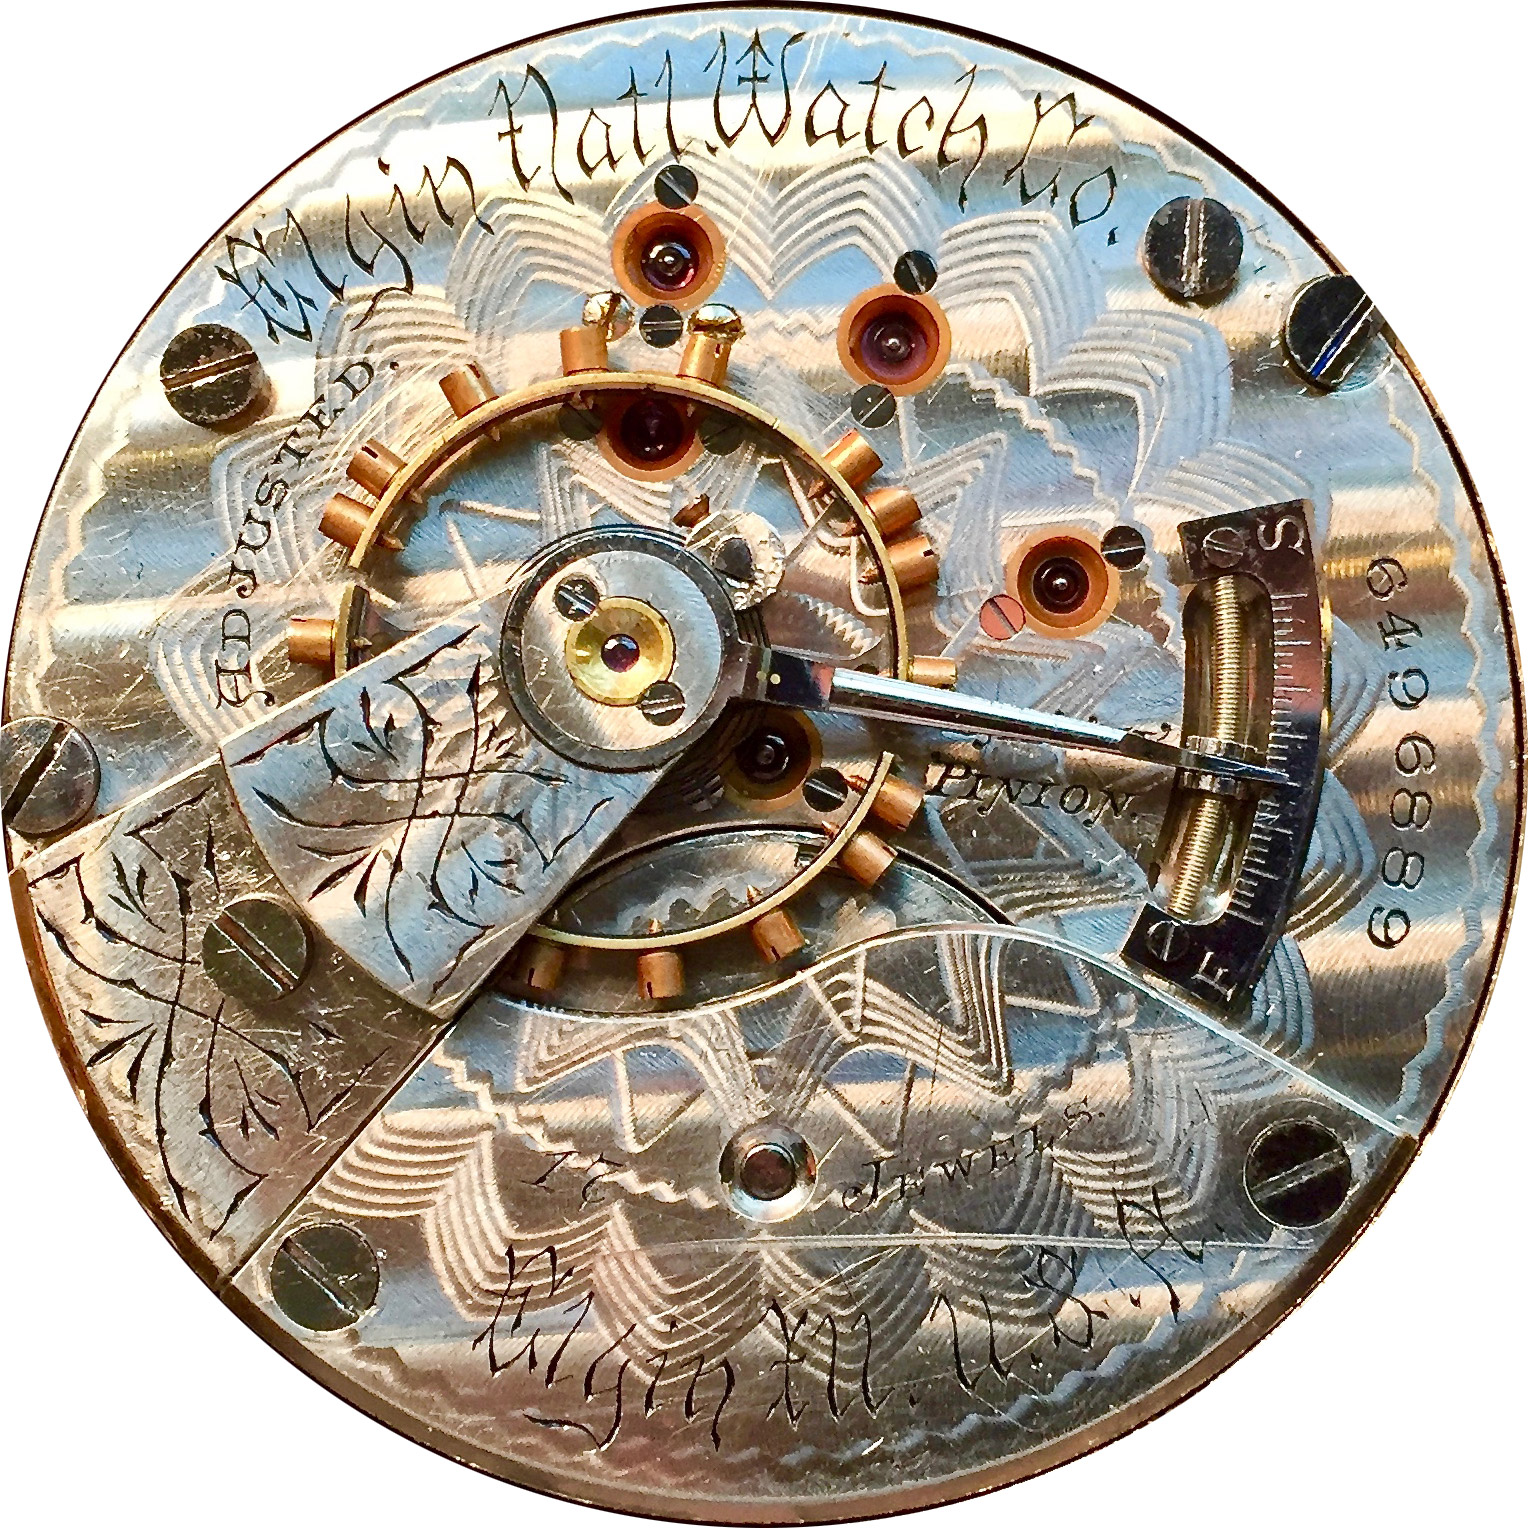 Elgin Grade 163 Pocket Watch Image